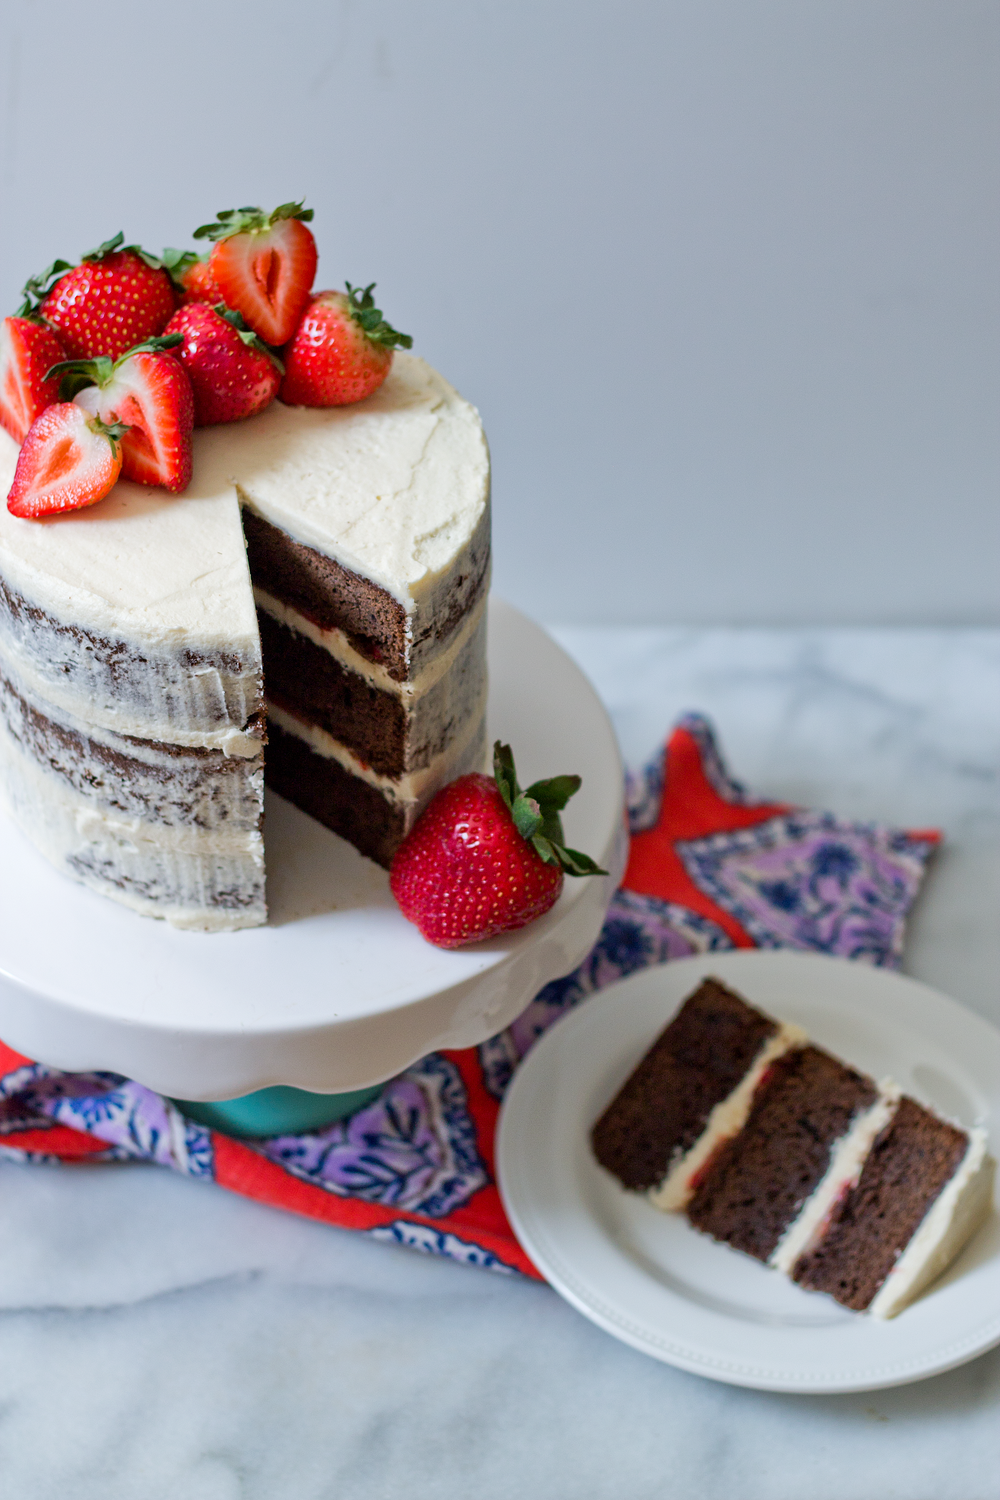 Layer cake made with brownies and strawberries from the Unusually Lovely blog